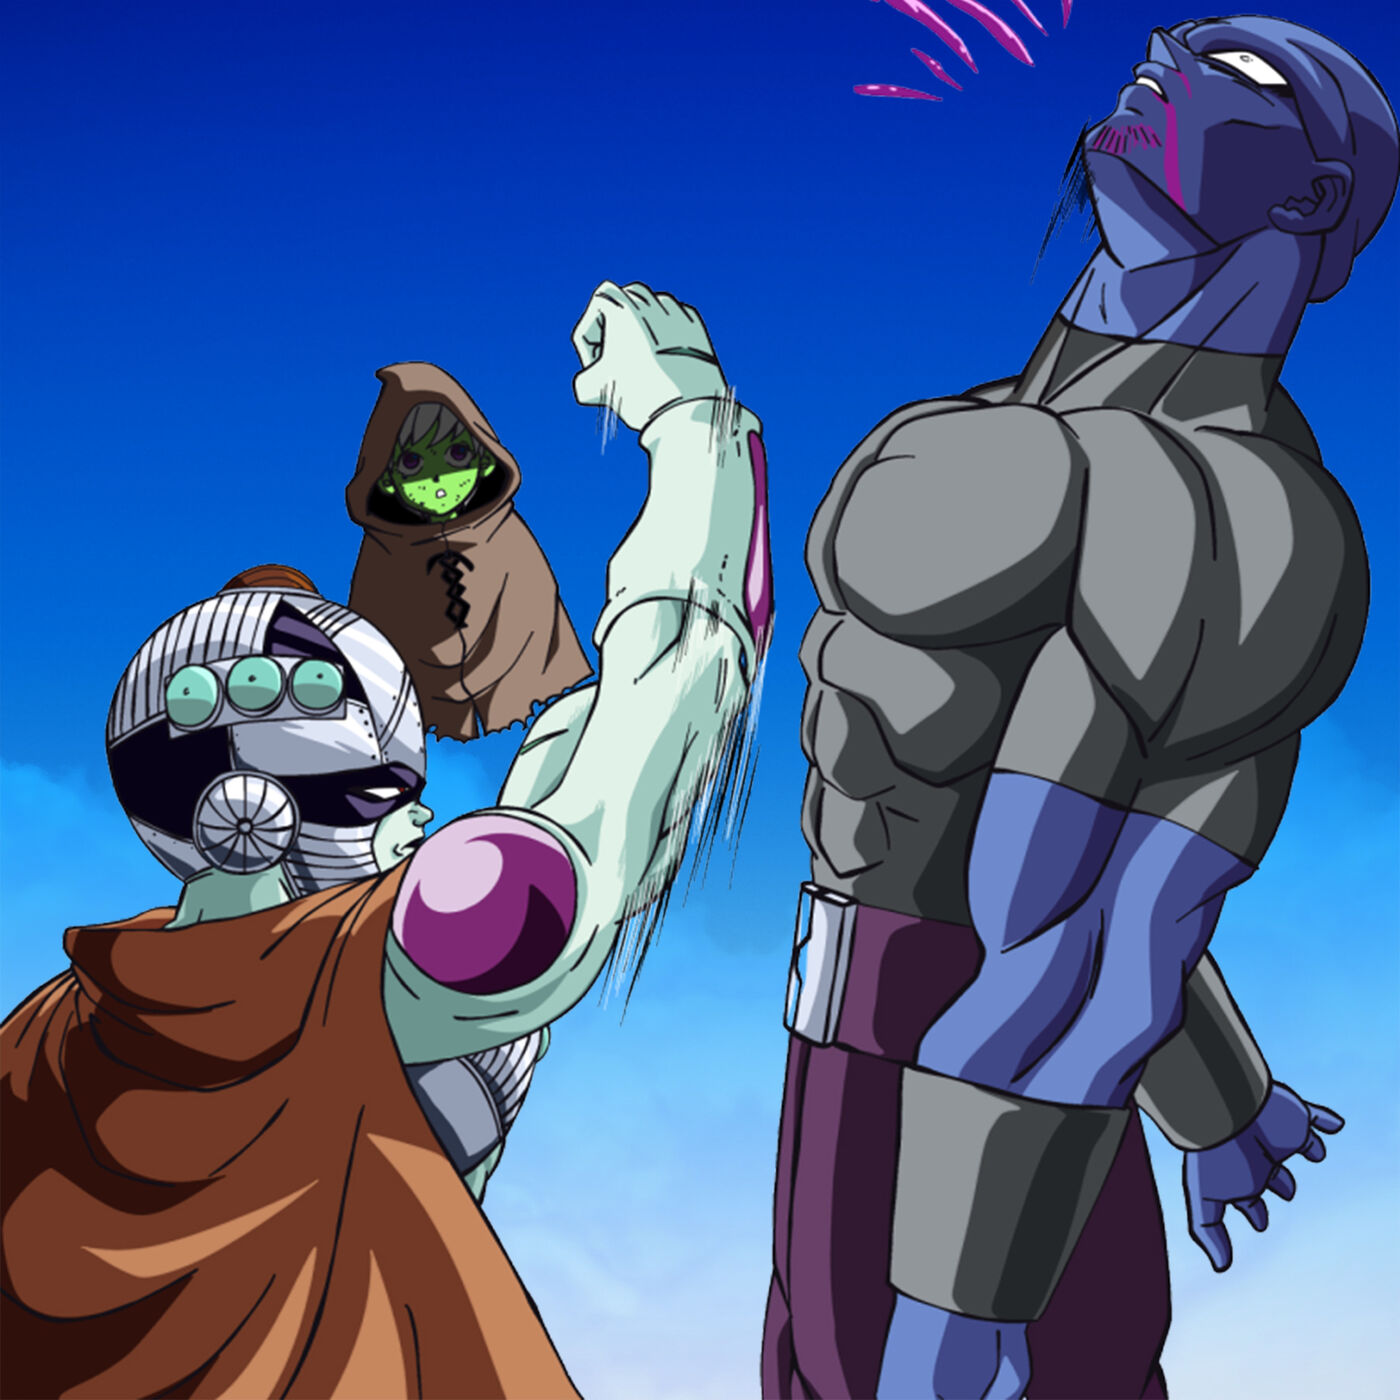 BONUS: What If Frieza Turned Good? Part 3